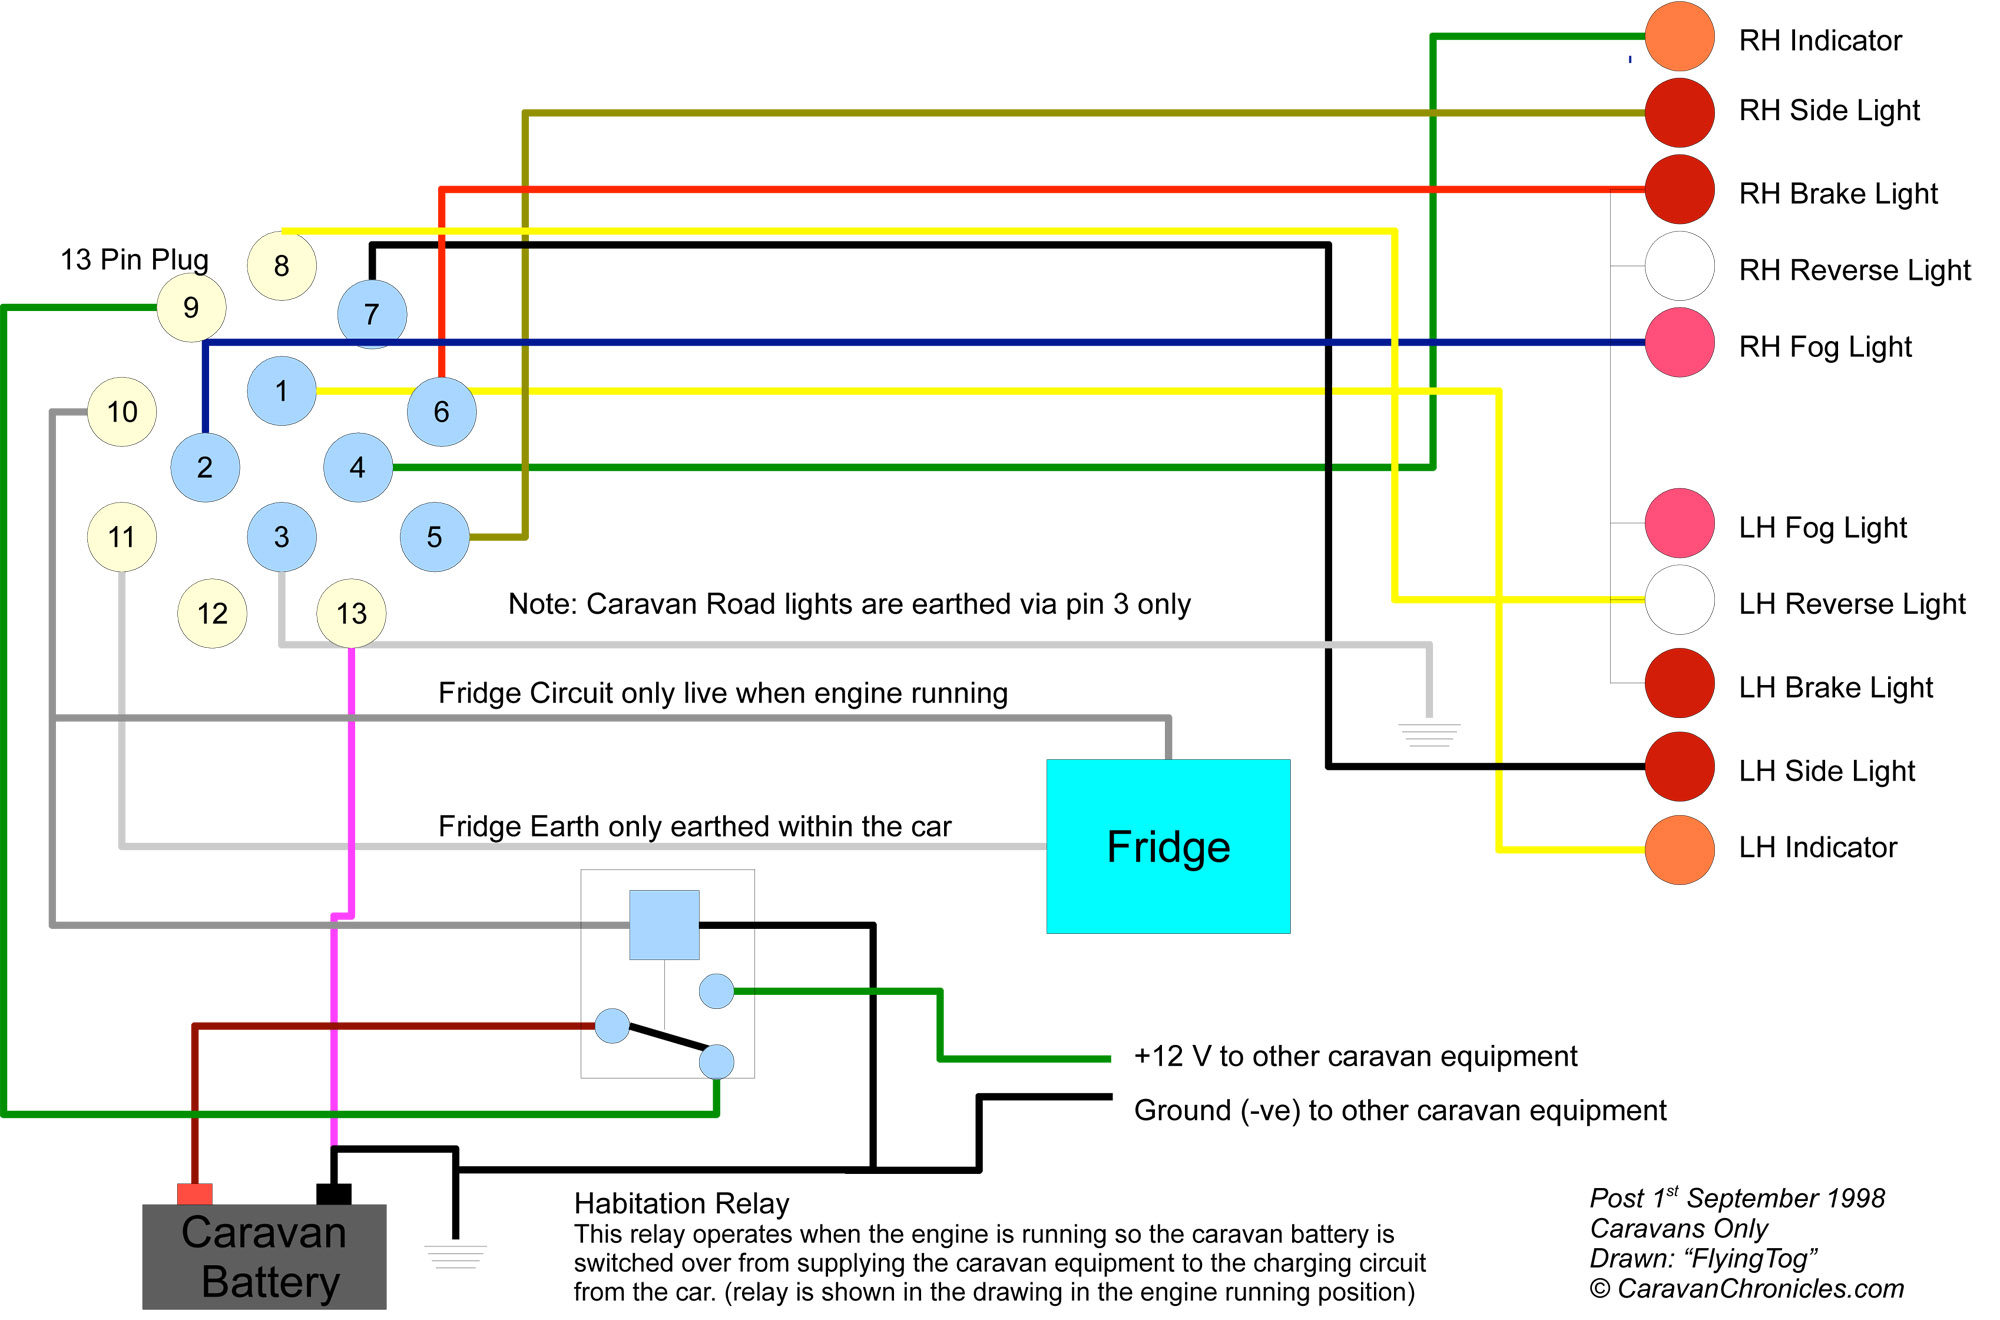 understanding caravan and tow car electrics caravan chronicles rh caravanchronicles com 12v caravan fridge wiring caravan fridge wiring anderson plug